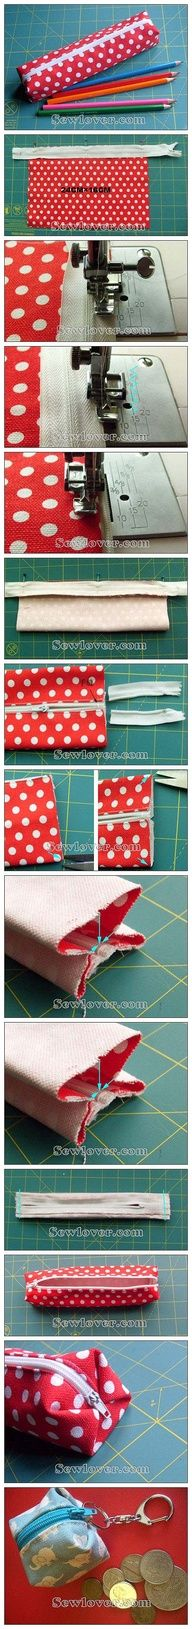 "Tutorial for boxy pouch"" data-componentType=""MODAL_PIN"